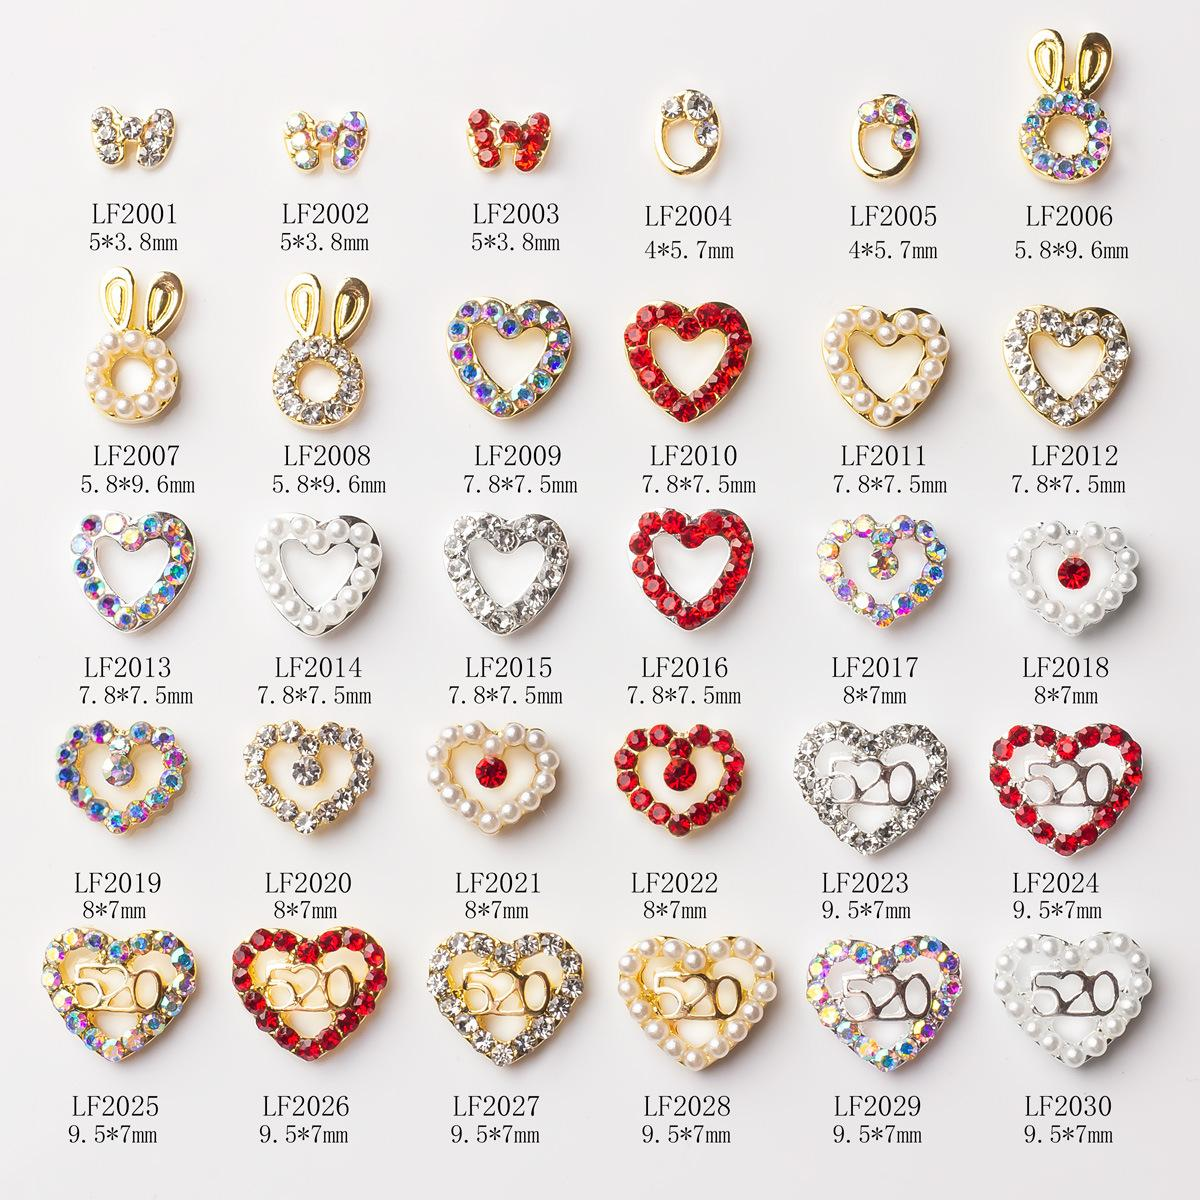 NAR005 30 styles 3D Colorful Round Oval Heart Charm Ornaments Nail Art Rhinestones Decoration DIY Nail Tips Accessories